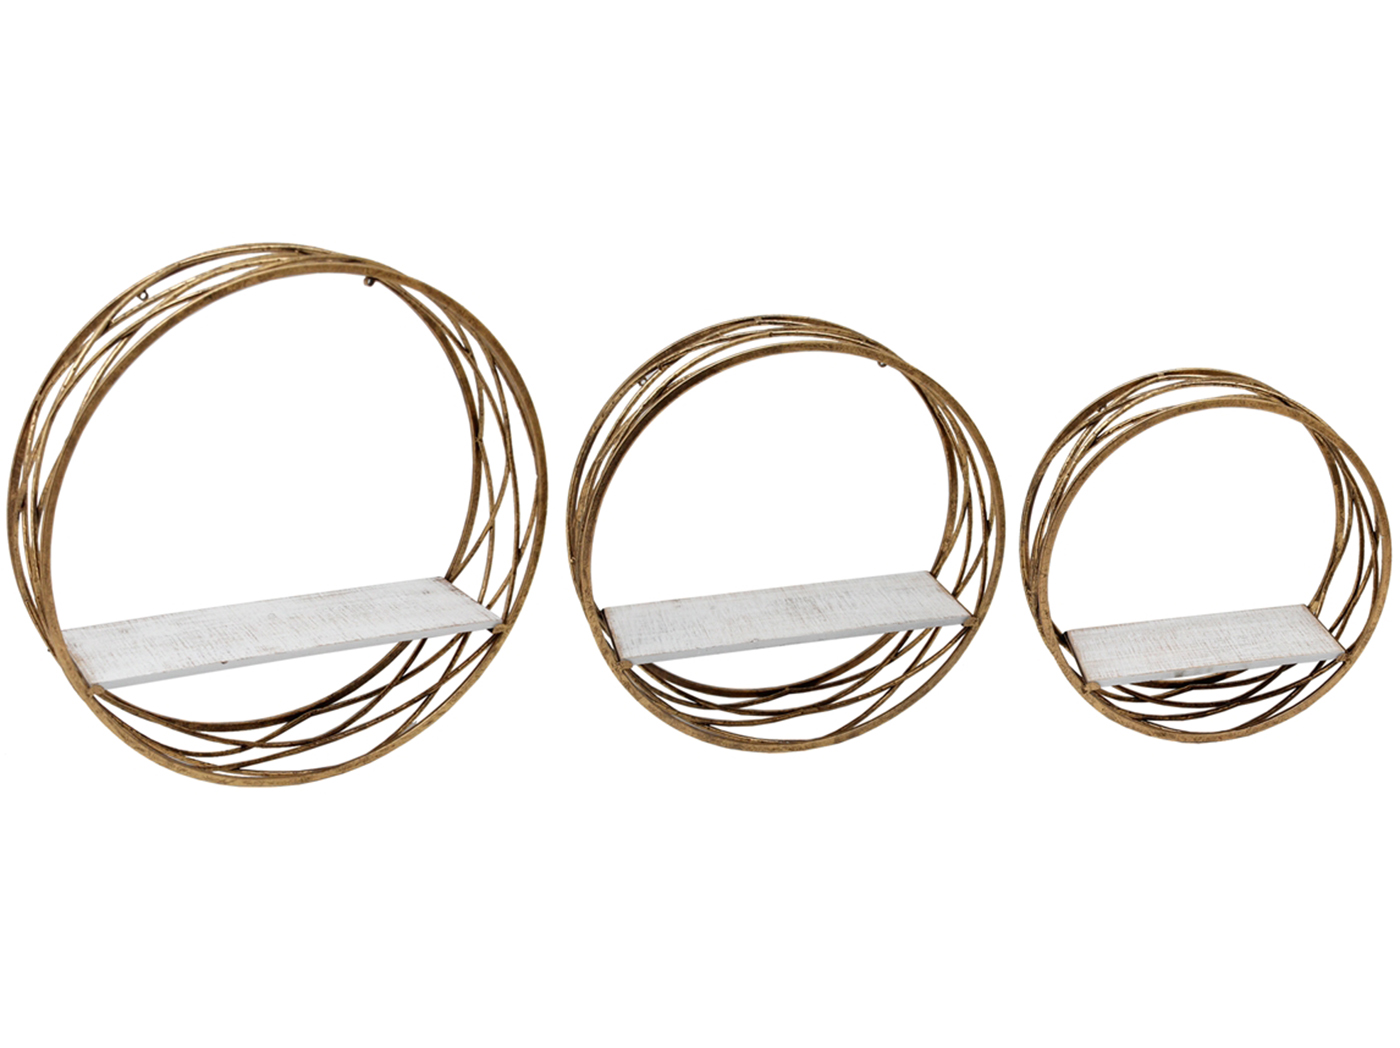 "Set of 3 Gold Metal with White Wood Round Wall Shelves 6""W x 24""H"